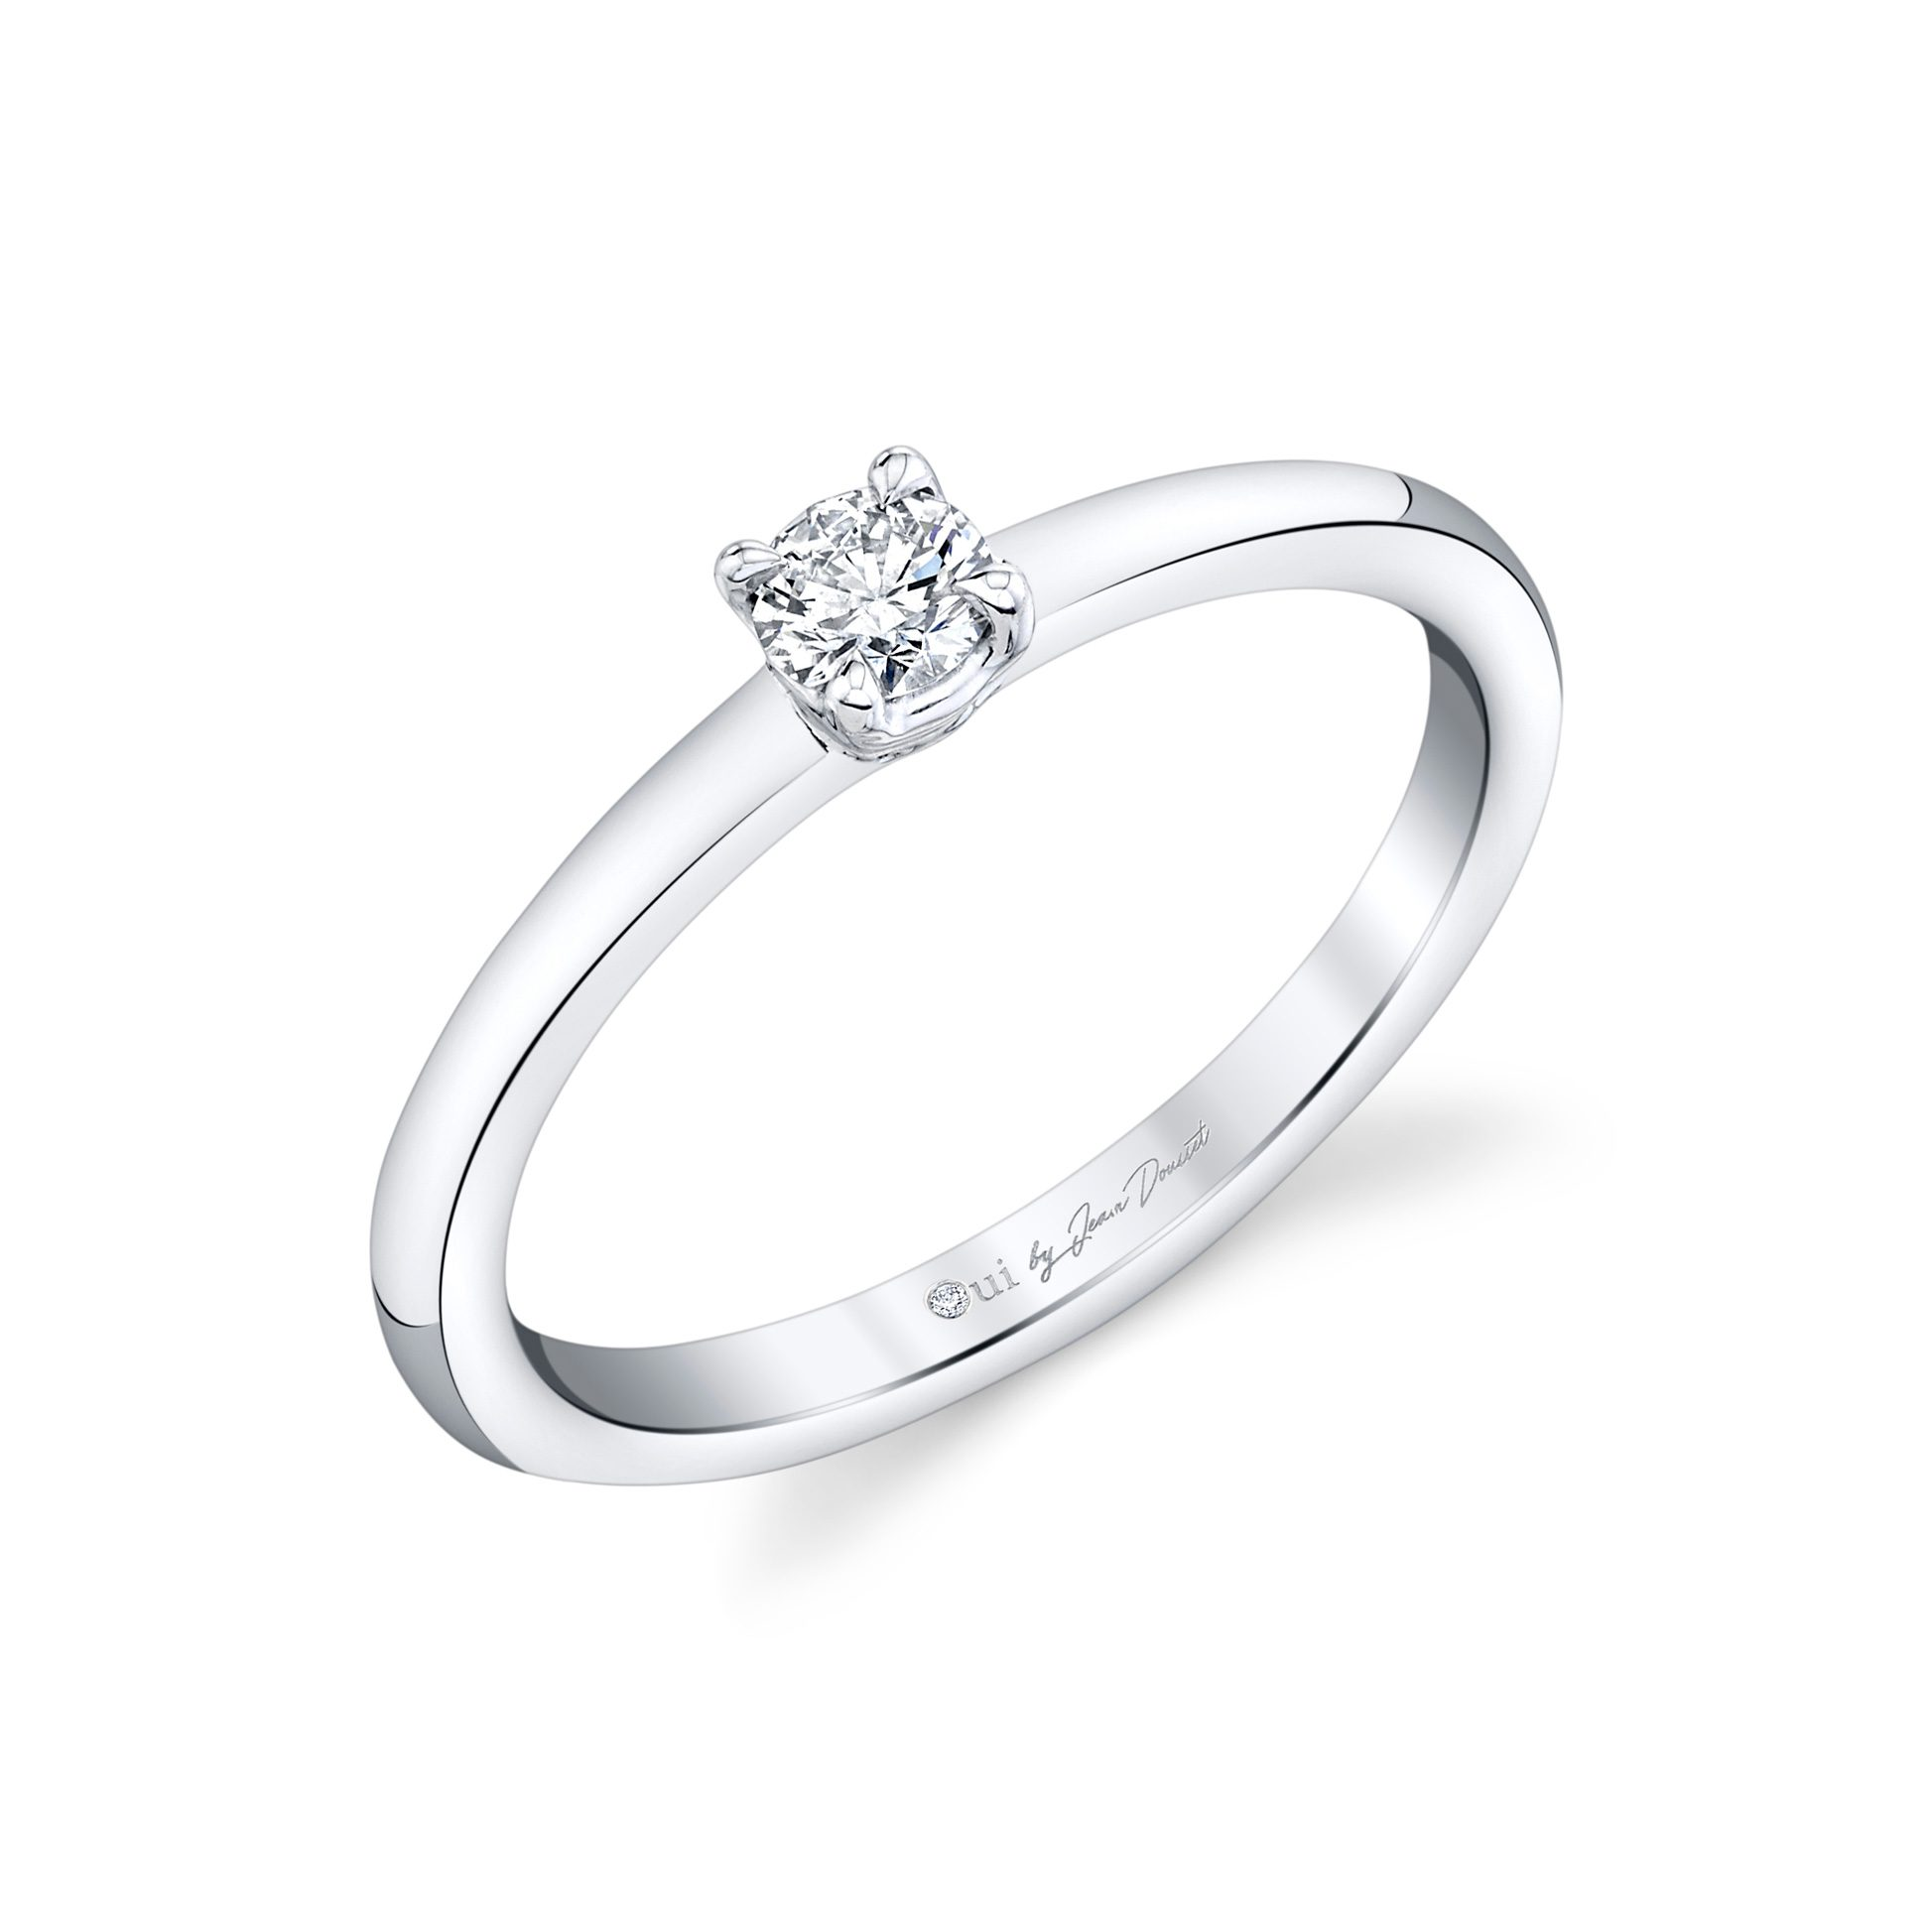 La Petite Round Brilliant Diamond Wedding Band in 18k White Gold Standing View by Oui by Jean Dousset